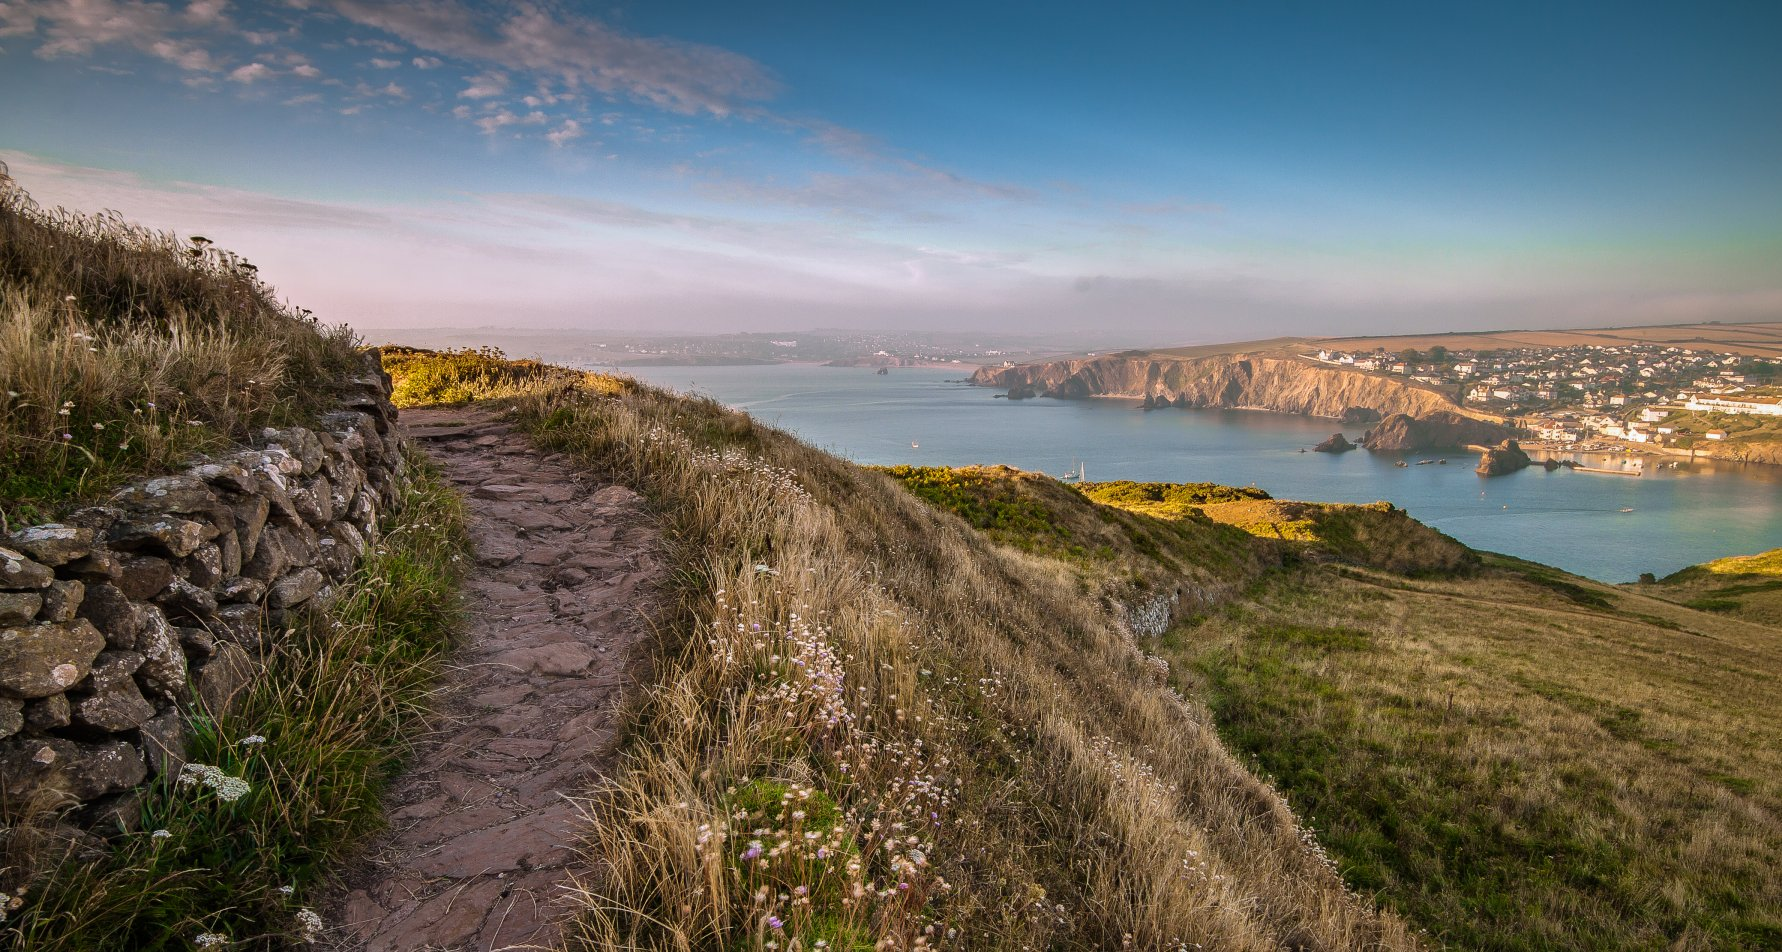 Landscape photo from the south west coast path at Bolt Tail across fields and the sea to coastal cliffs and Hope Cove